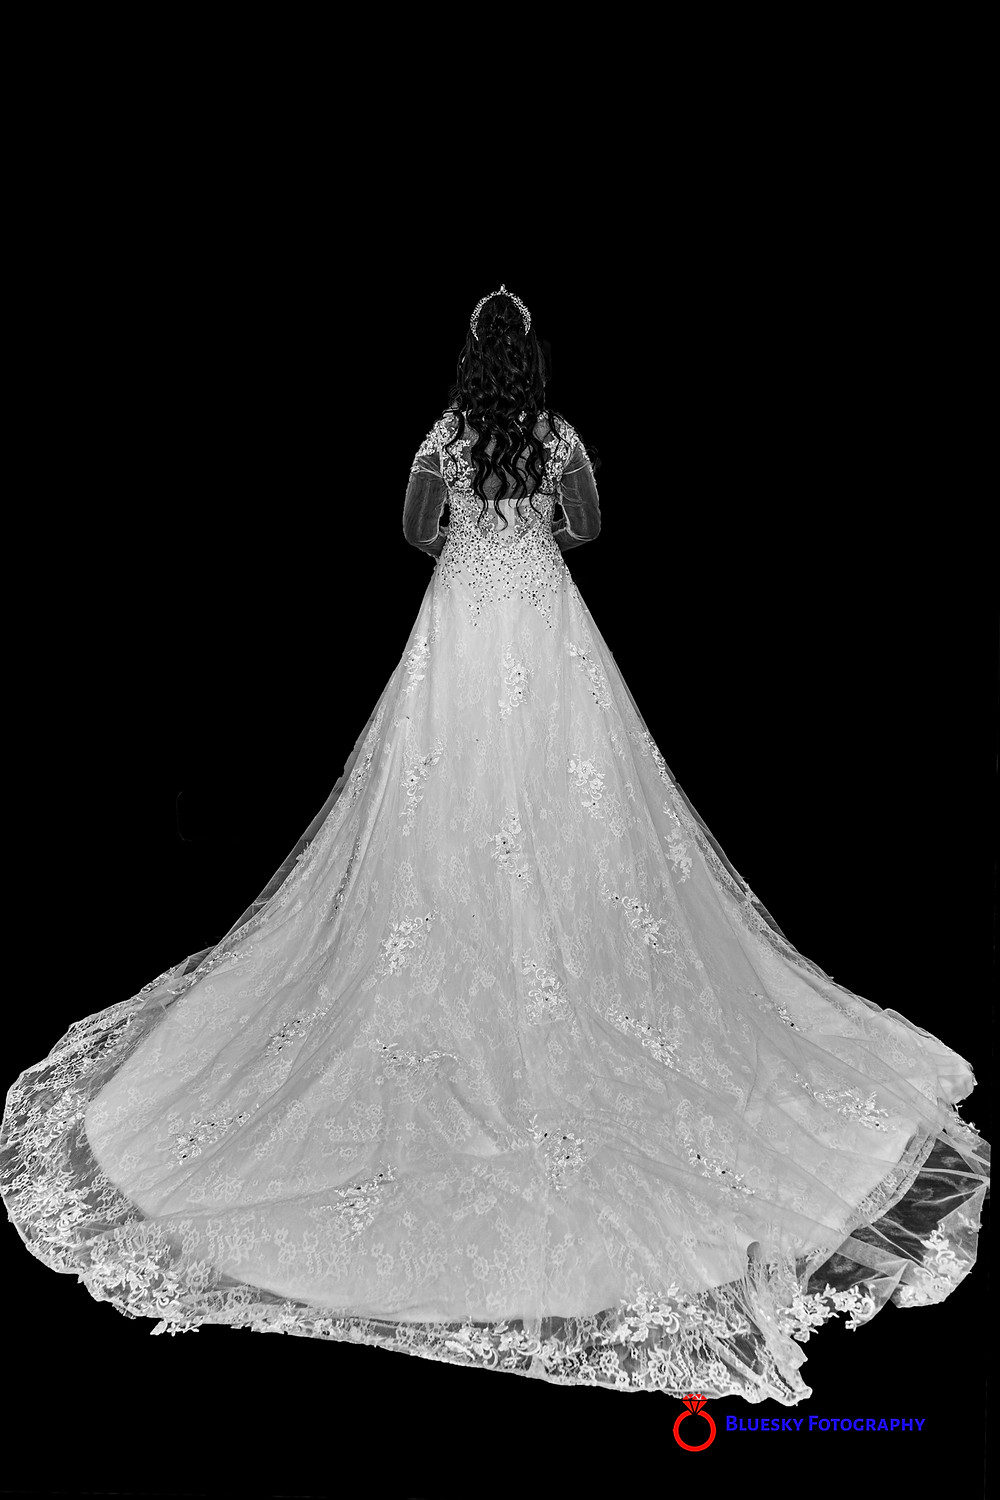 Bridal gown in black and white